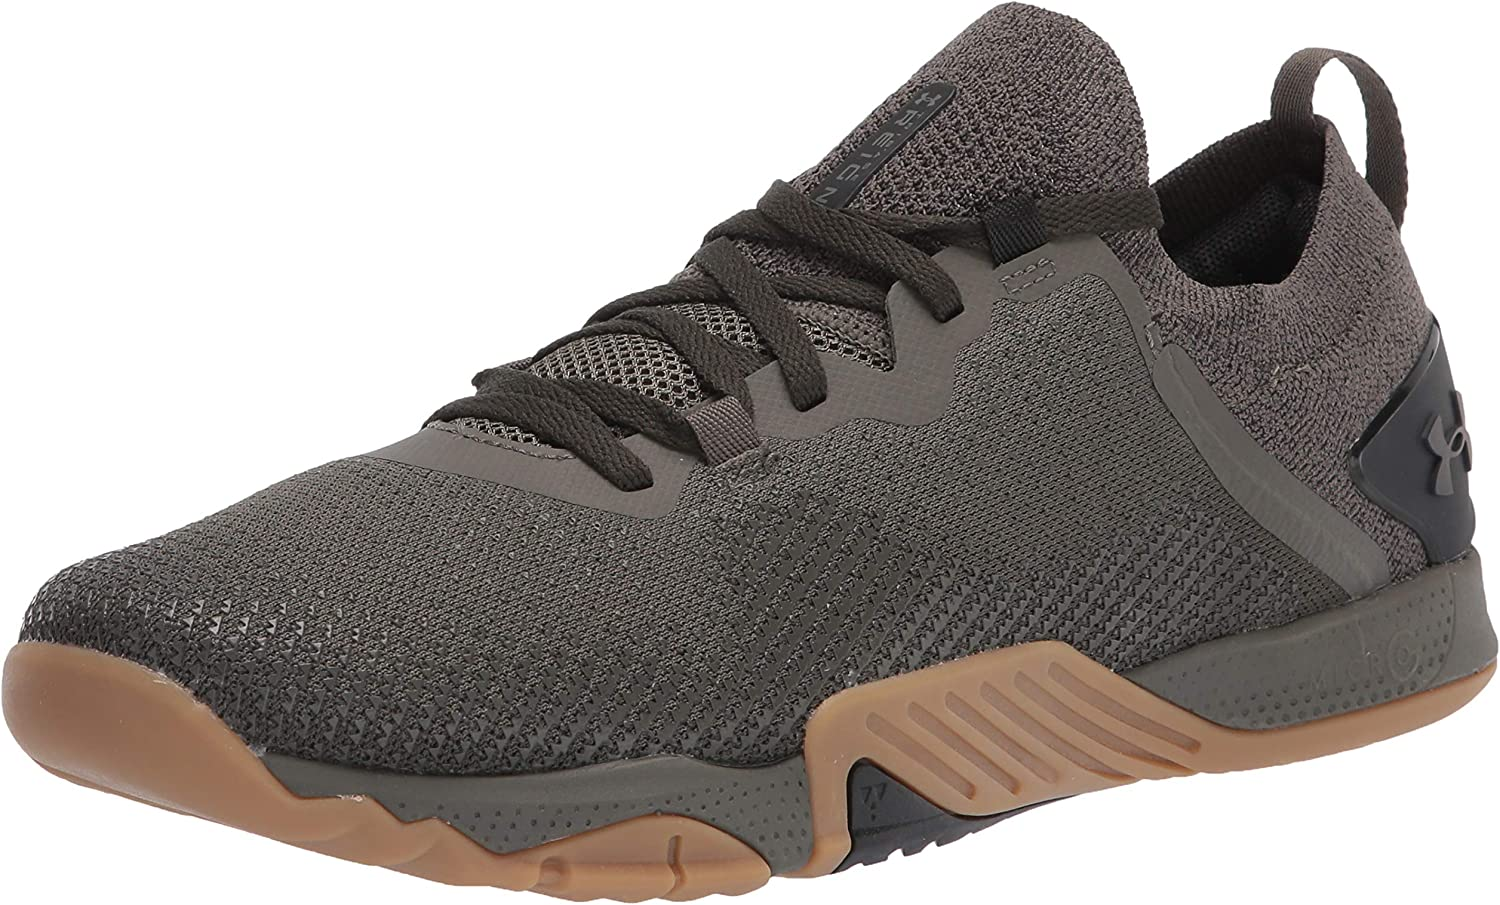   Under Armour mens Tribase Reign 3   Fitness & Cross-Training